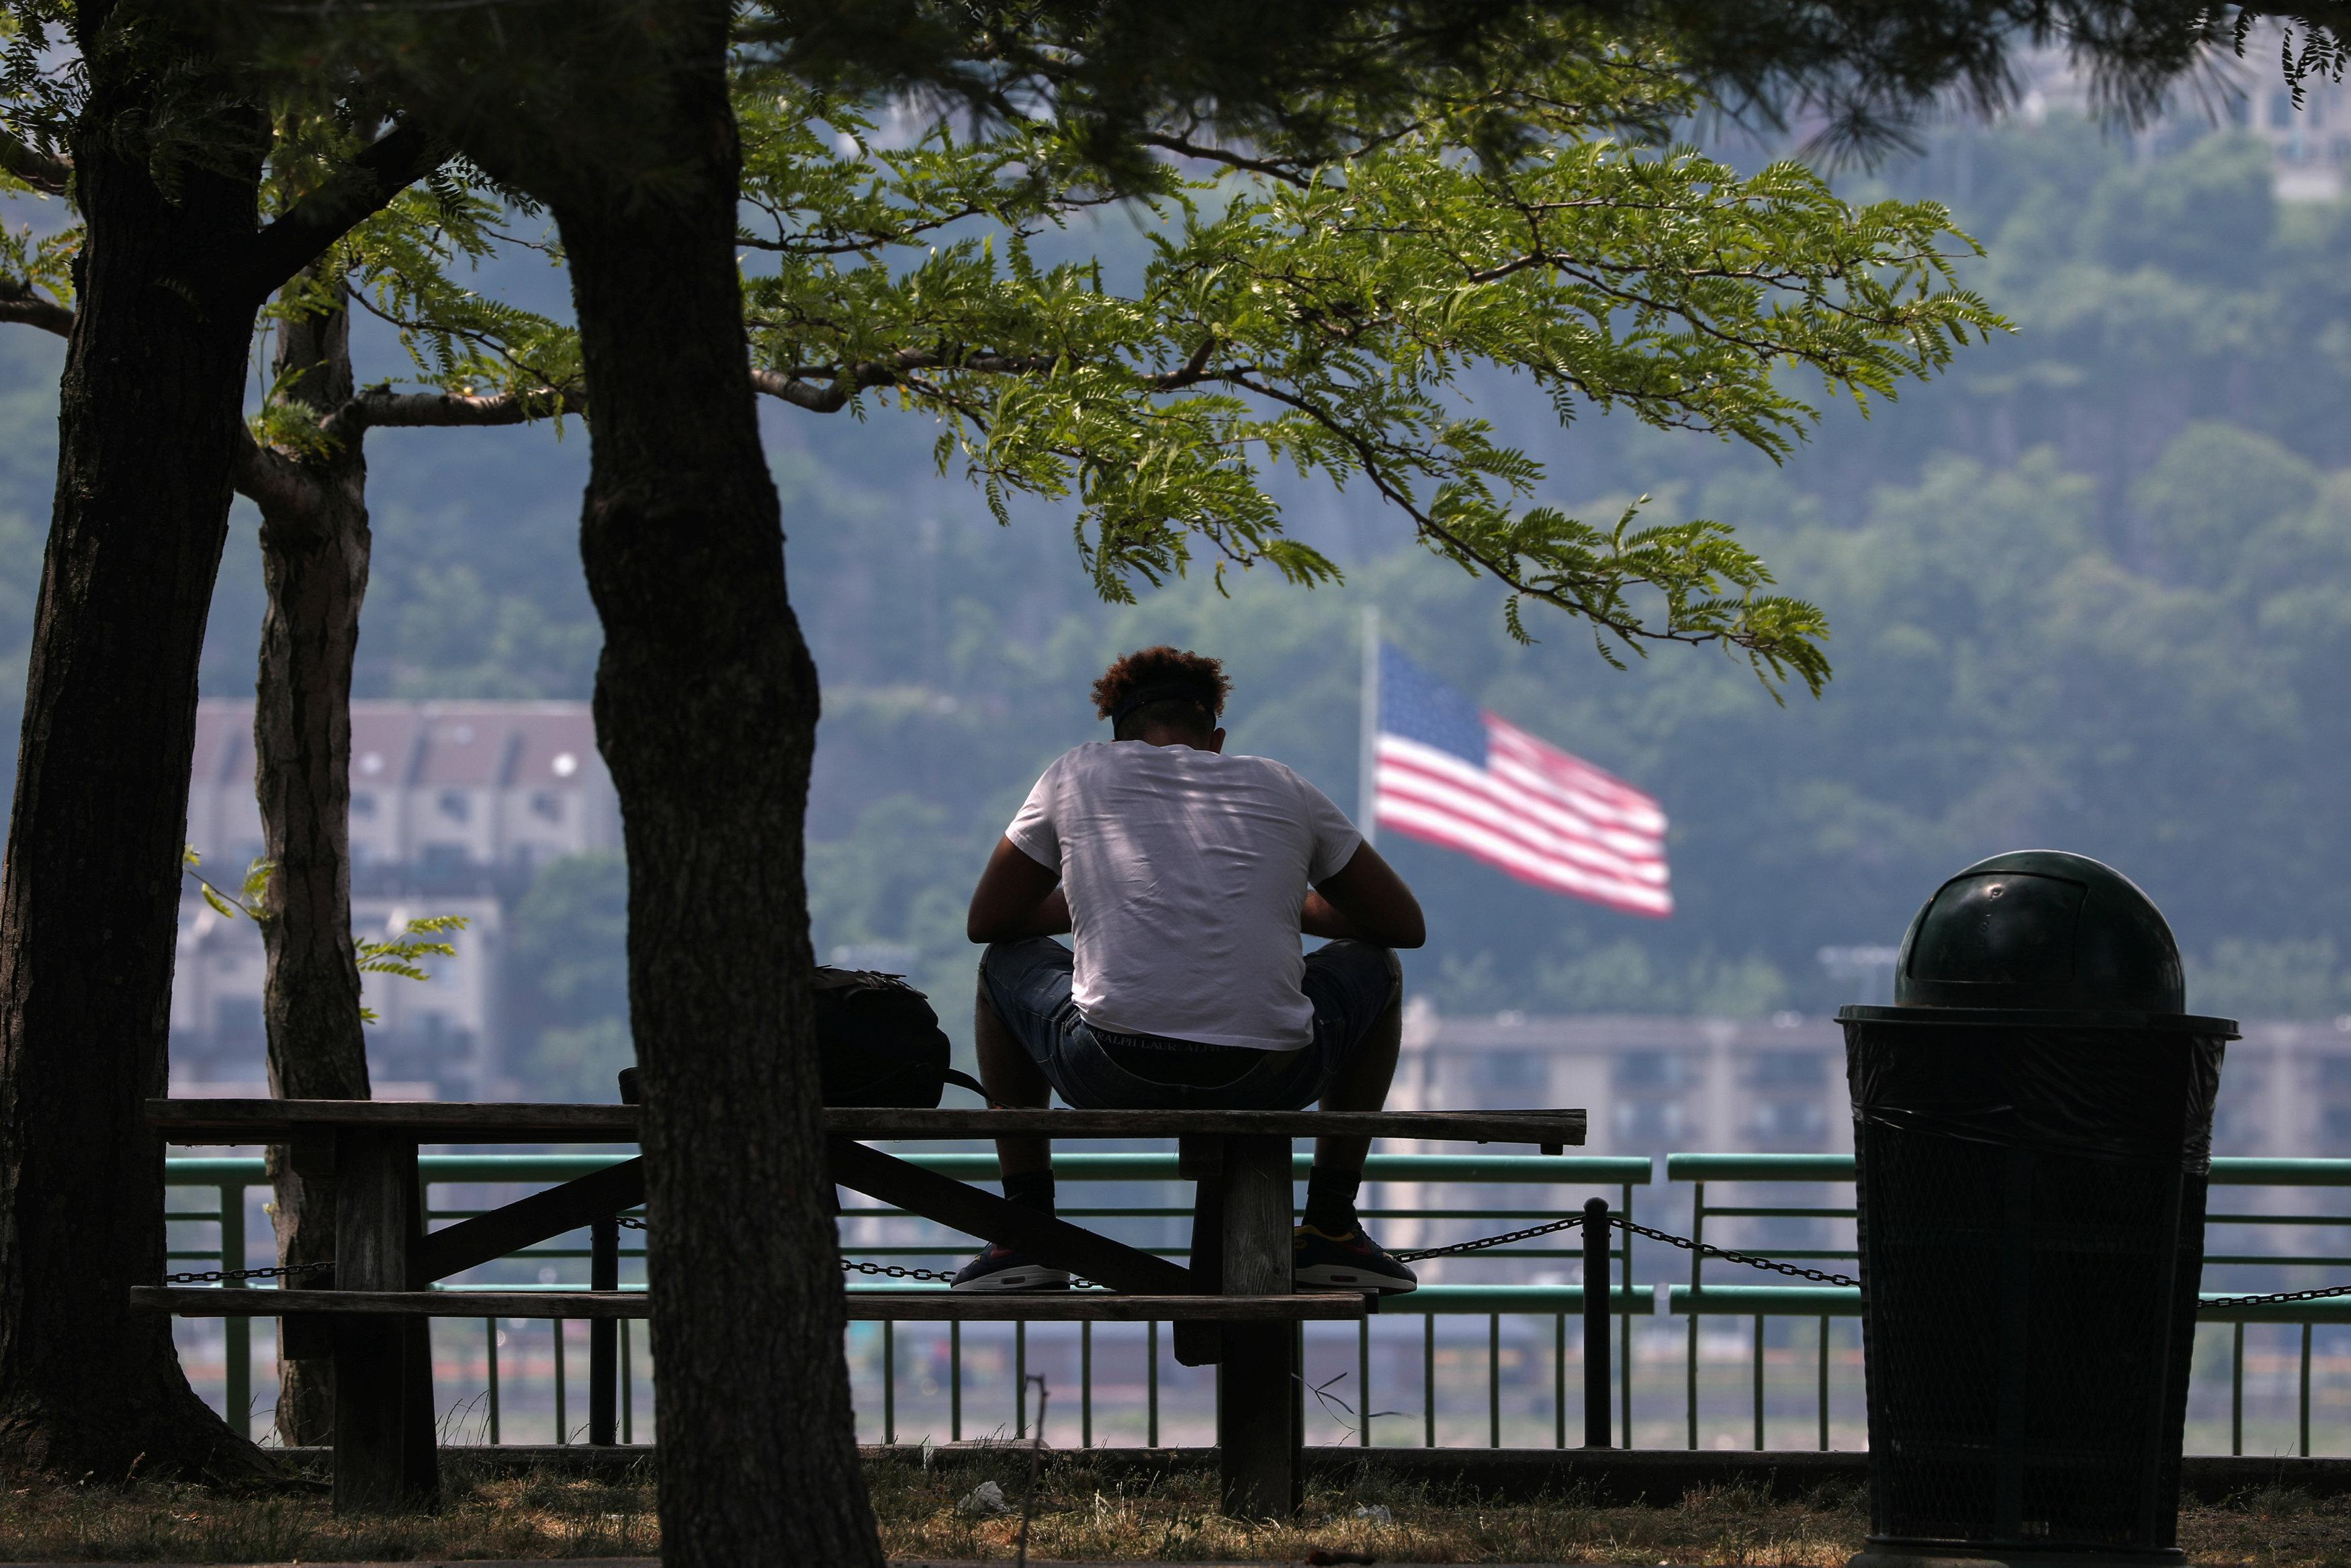 A man sits in the shade at Riverbank State Park during very hot weather in the Washington Heights section of Manhattan in New York City, New York, U.S., June 18, 2018. Mike Segar